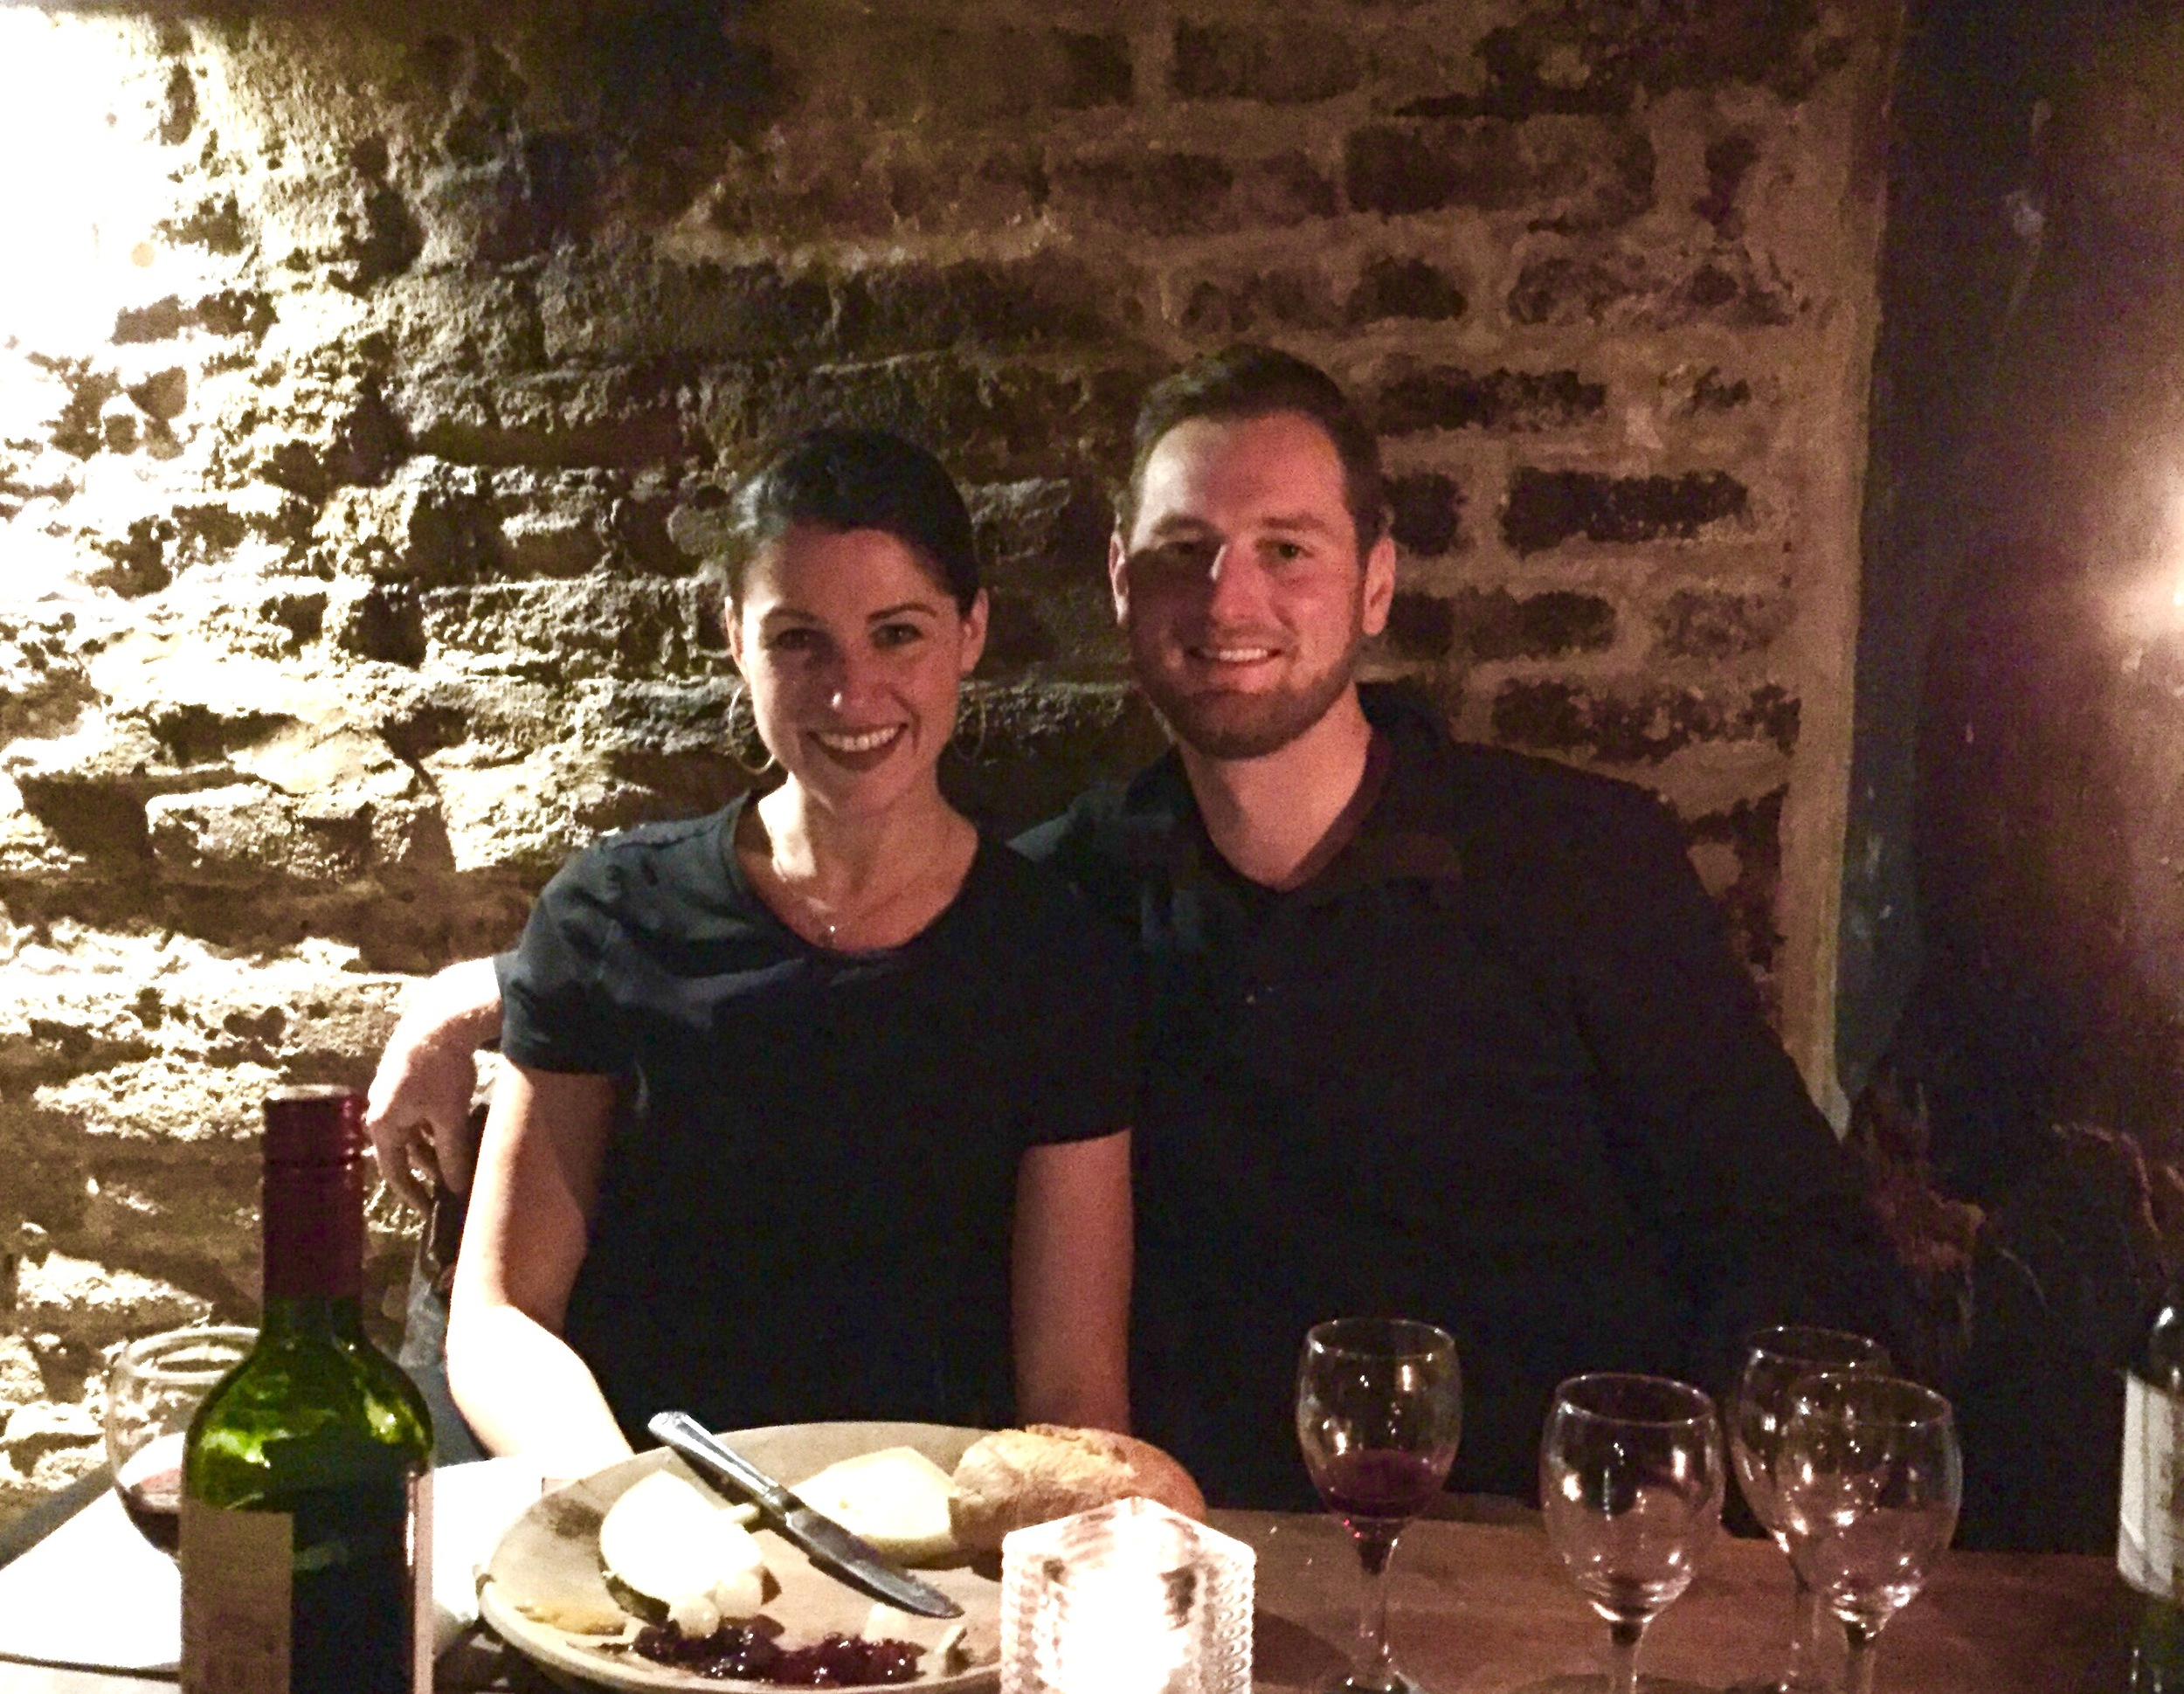 The happiest Mr. &Mrs. in Gordon's Wine Bar in London, England.